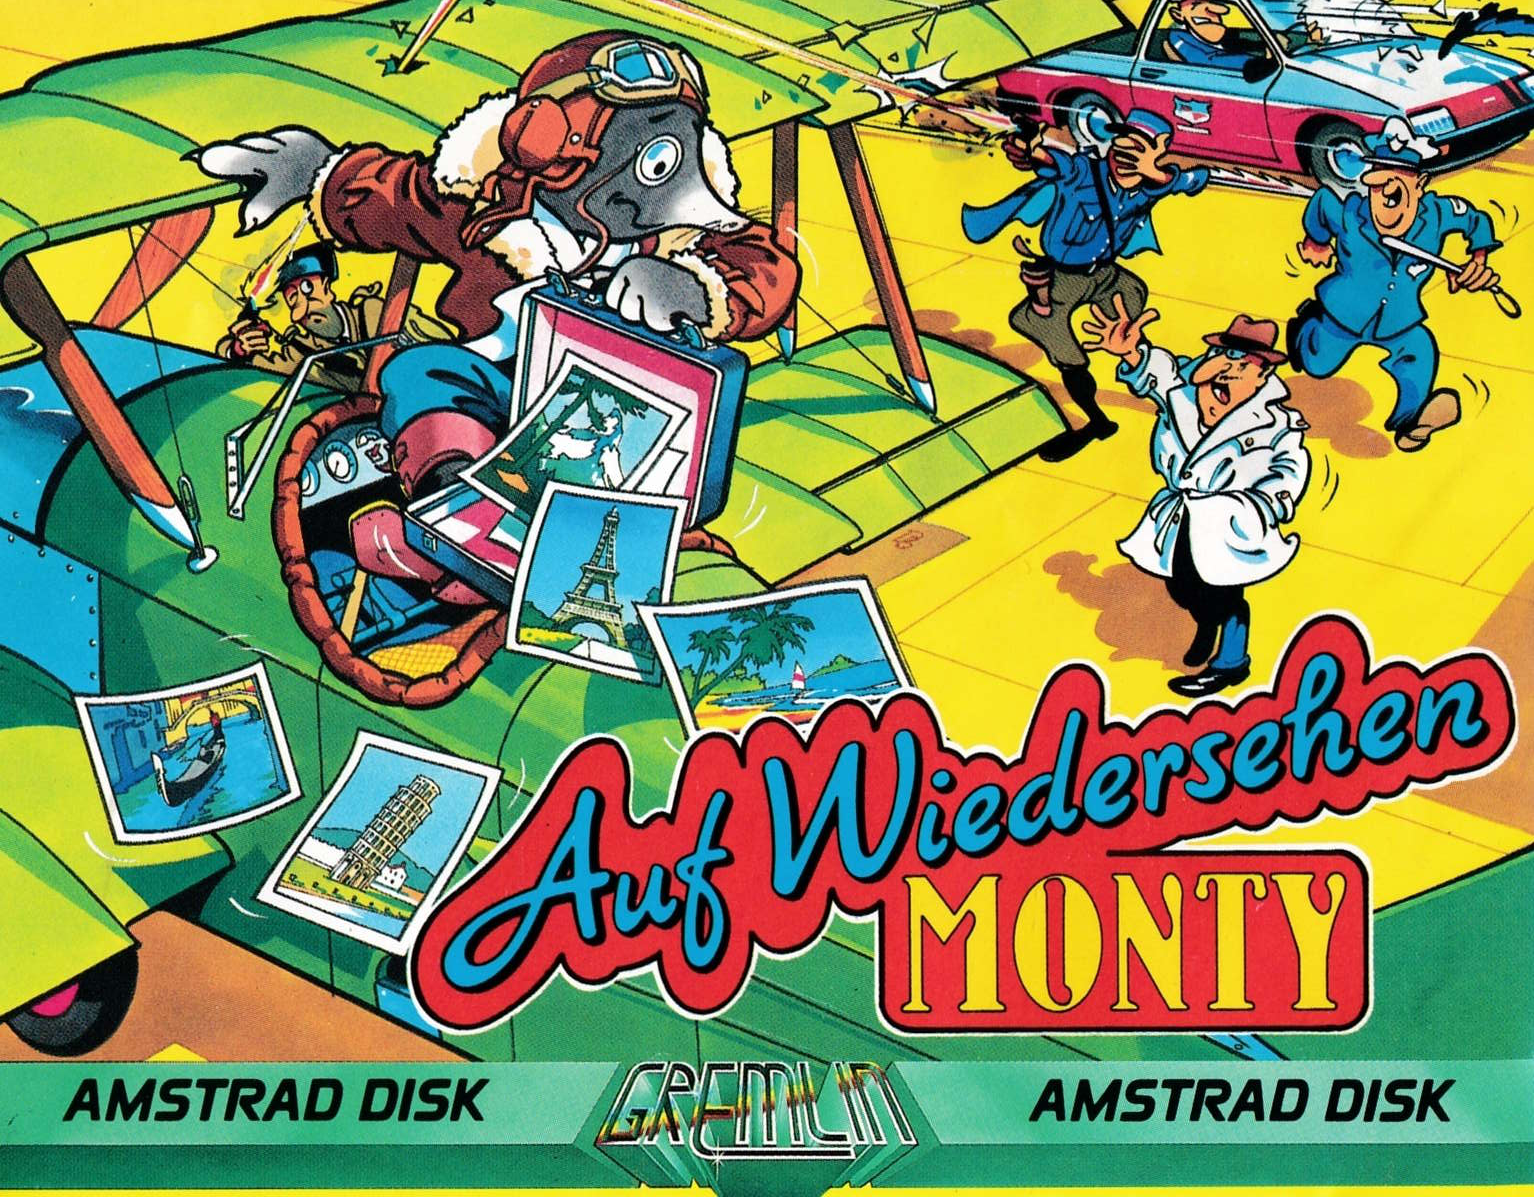 cover of the Amstrad CPC game Auf Wiedersehen Monty  by GameBase CPC